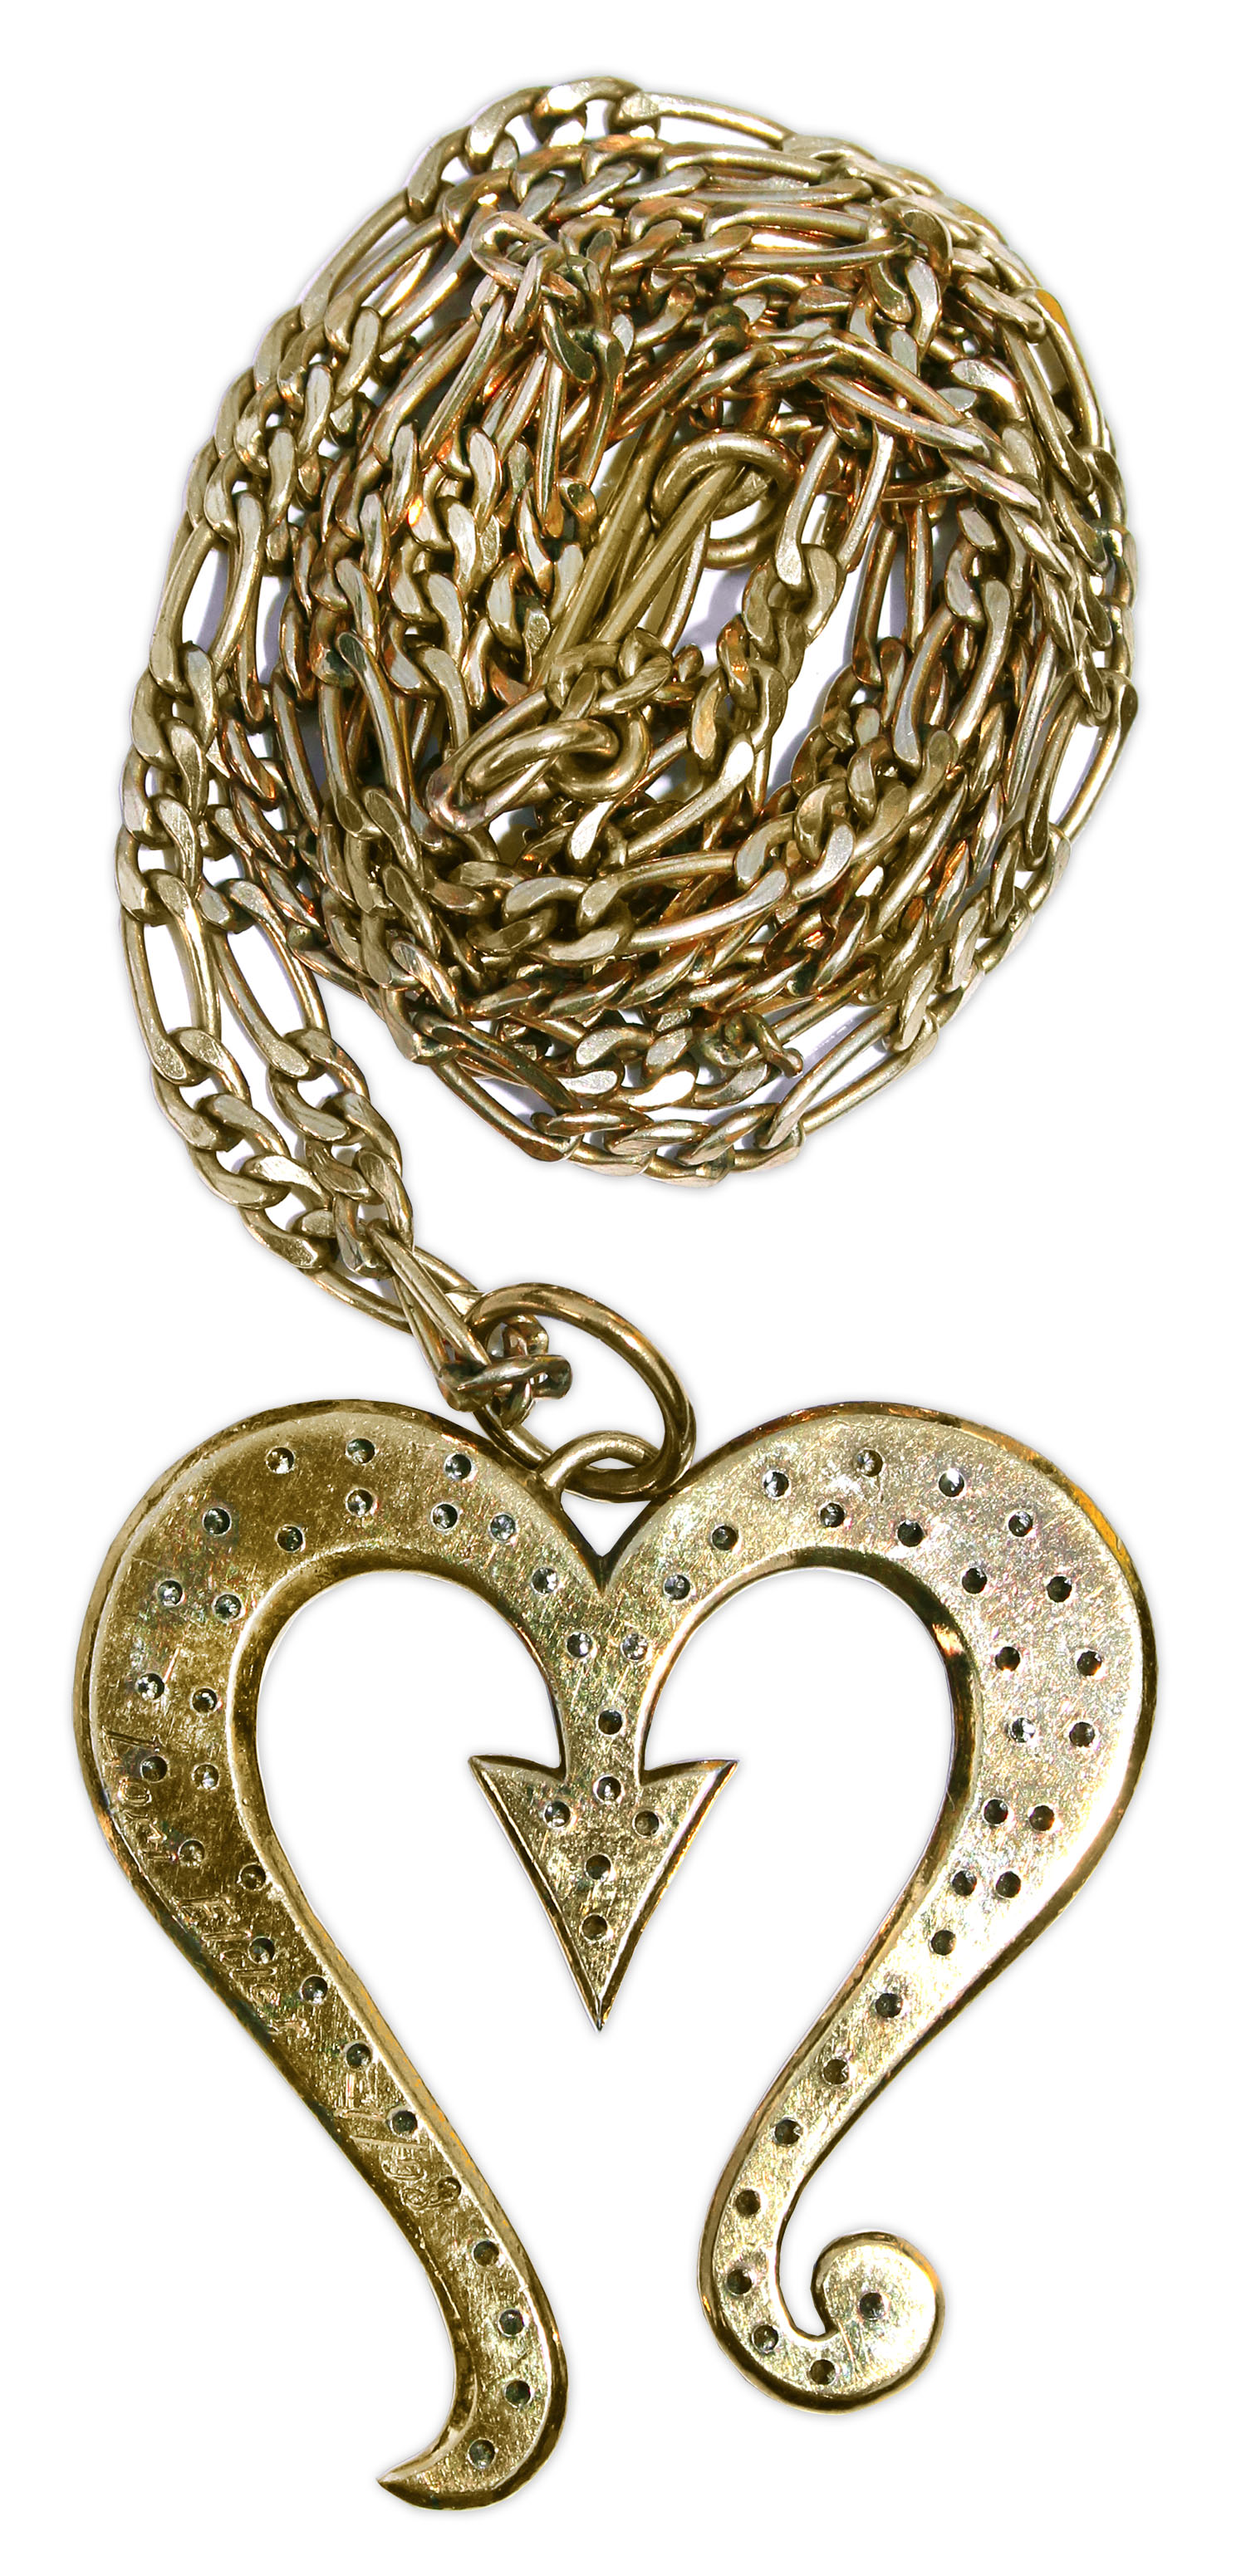 Lot Detail Scorpio Diamond Necklace Worn By Prince When He Met Prince Charles Hei matau this is how i carve a traditional symbol called a hei matau (stylized fishing a hei matau, also known as a hawaiian hook or a maori hook is an ancient polynesian. scorpio diamond necklace worn by prince